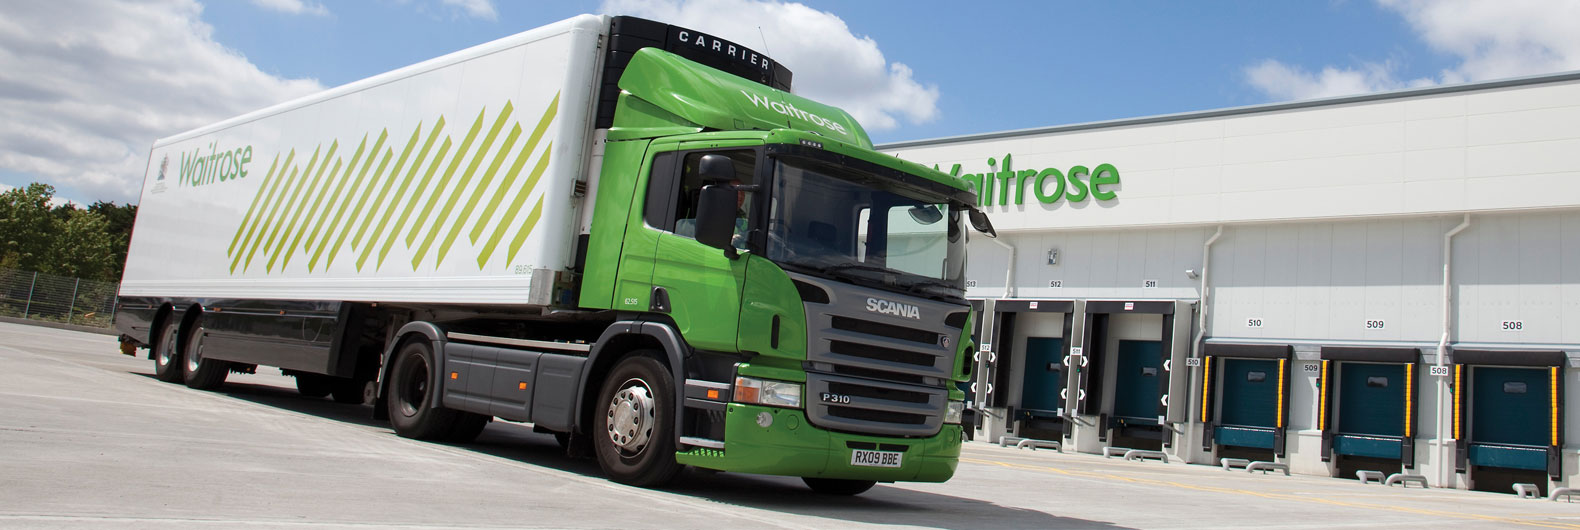 British supermarket chain launches trucks powered by food waste